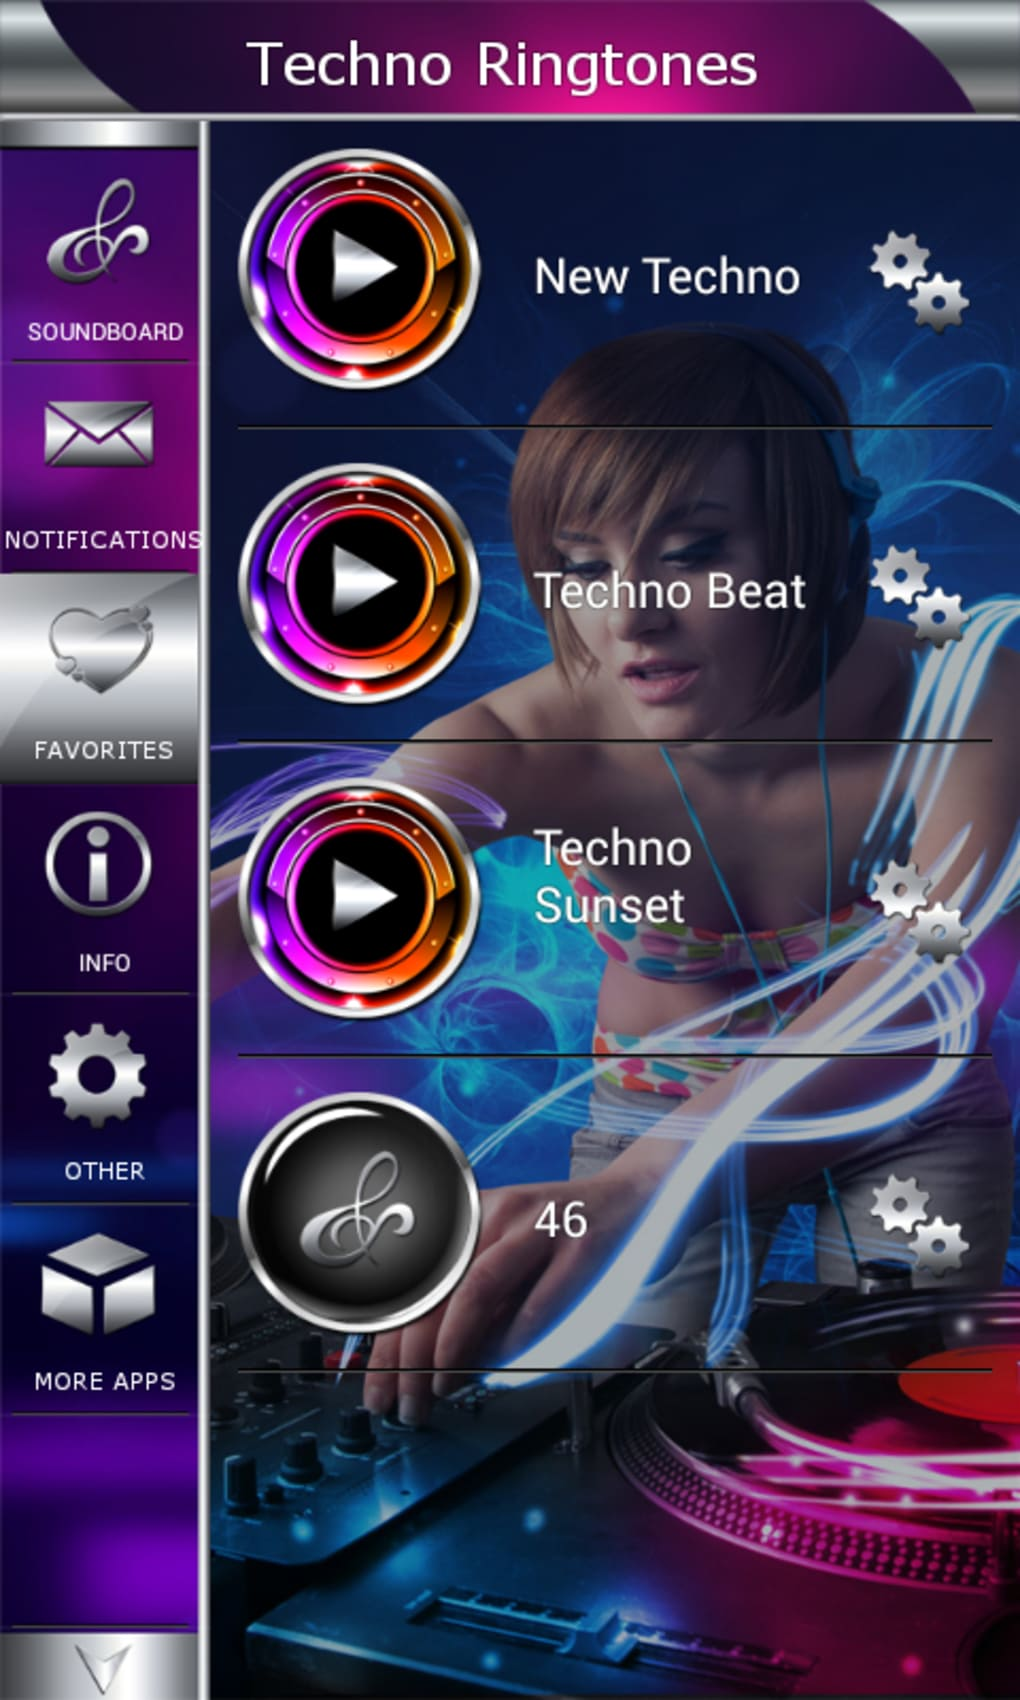 Techno Ringtones for Android - Download